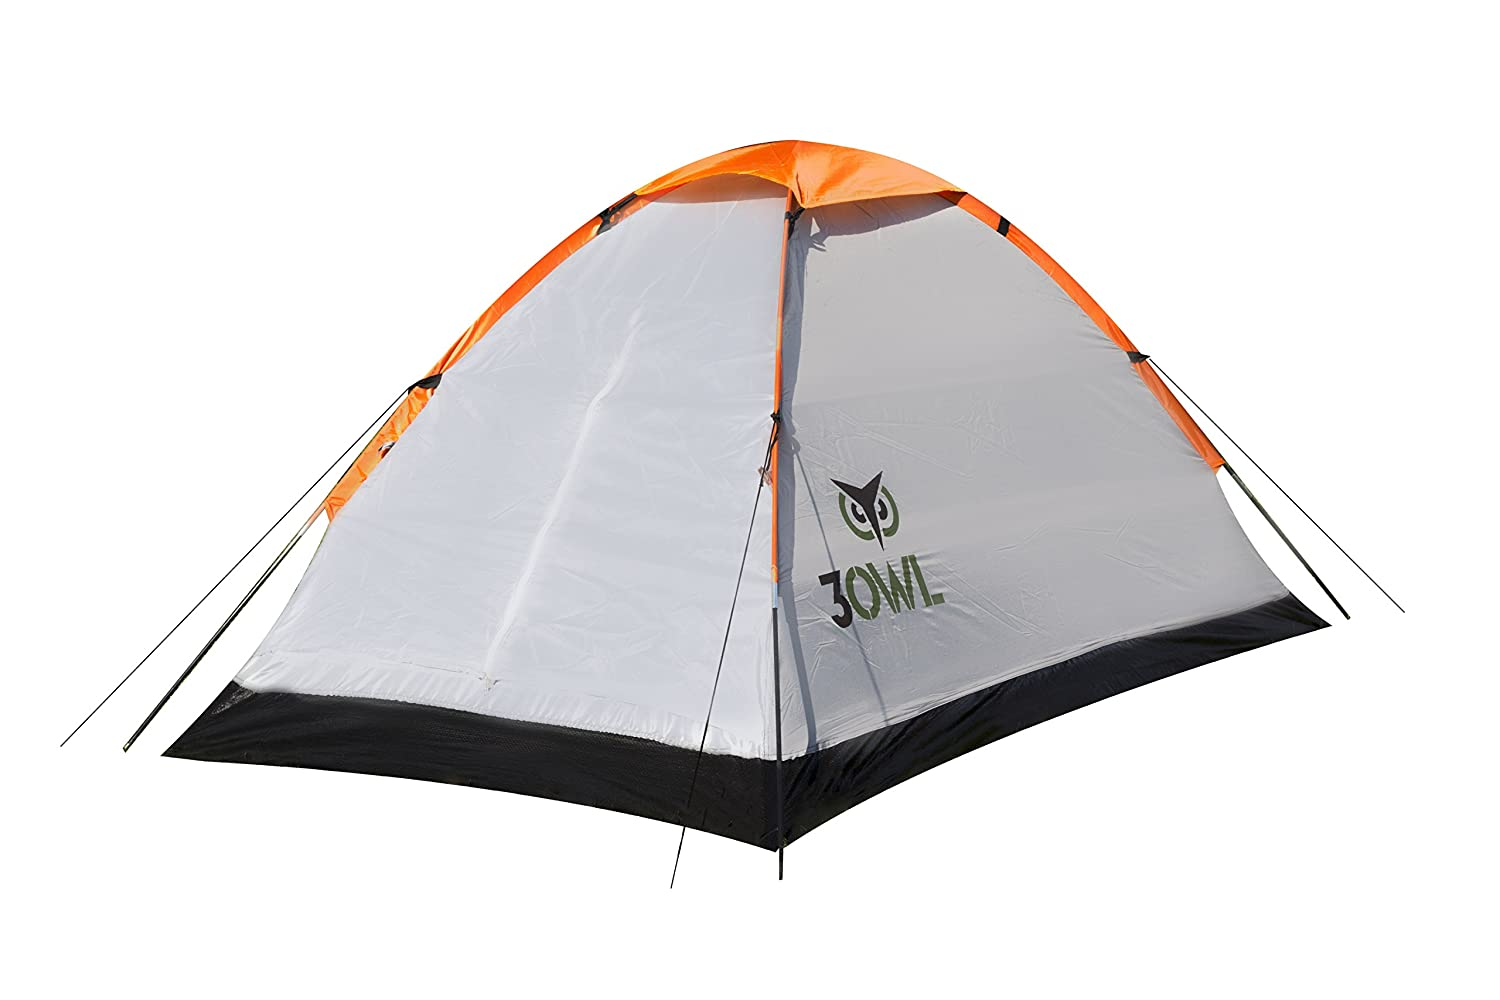 3OWL Everglades 2-Person Tent Perfect for Backpacking Hiking C&ing and Outdoors  sc 1 st  Amazon.com & Amazon.com : 3OWL Everglades 2-Person Tent With Vestibule Perfect ...